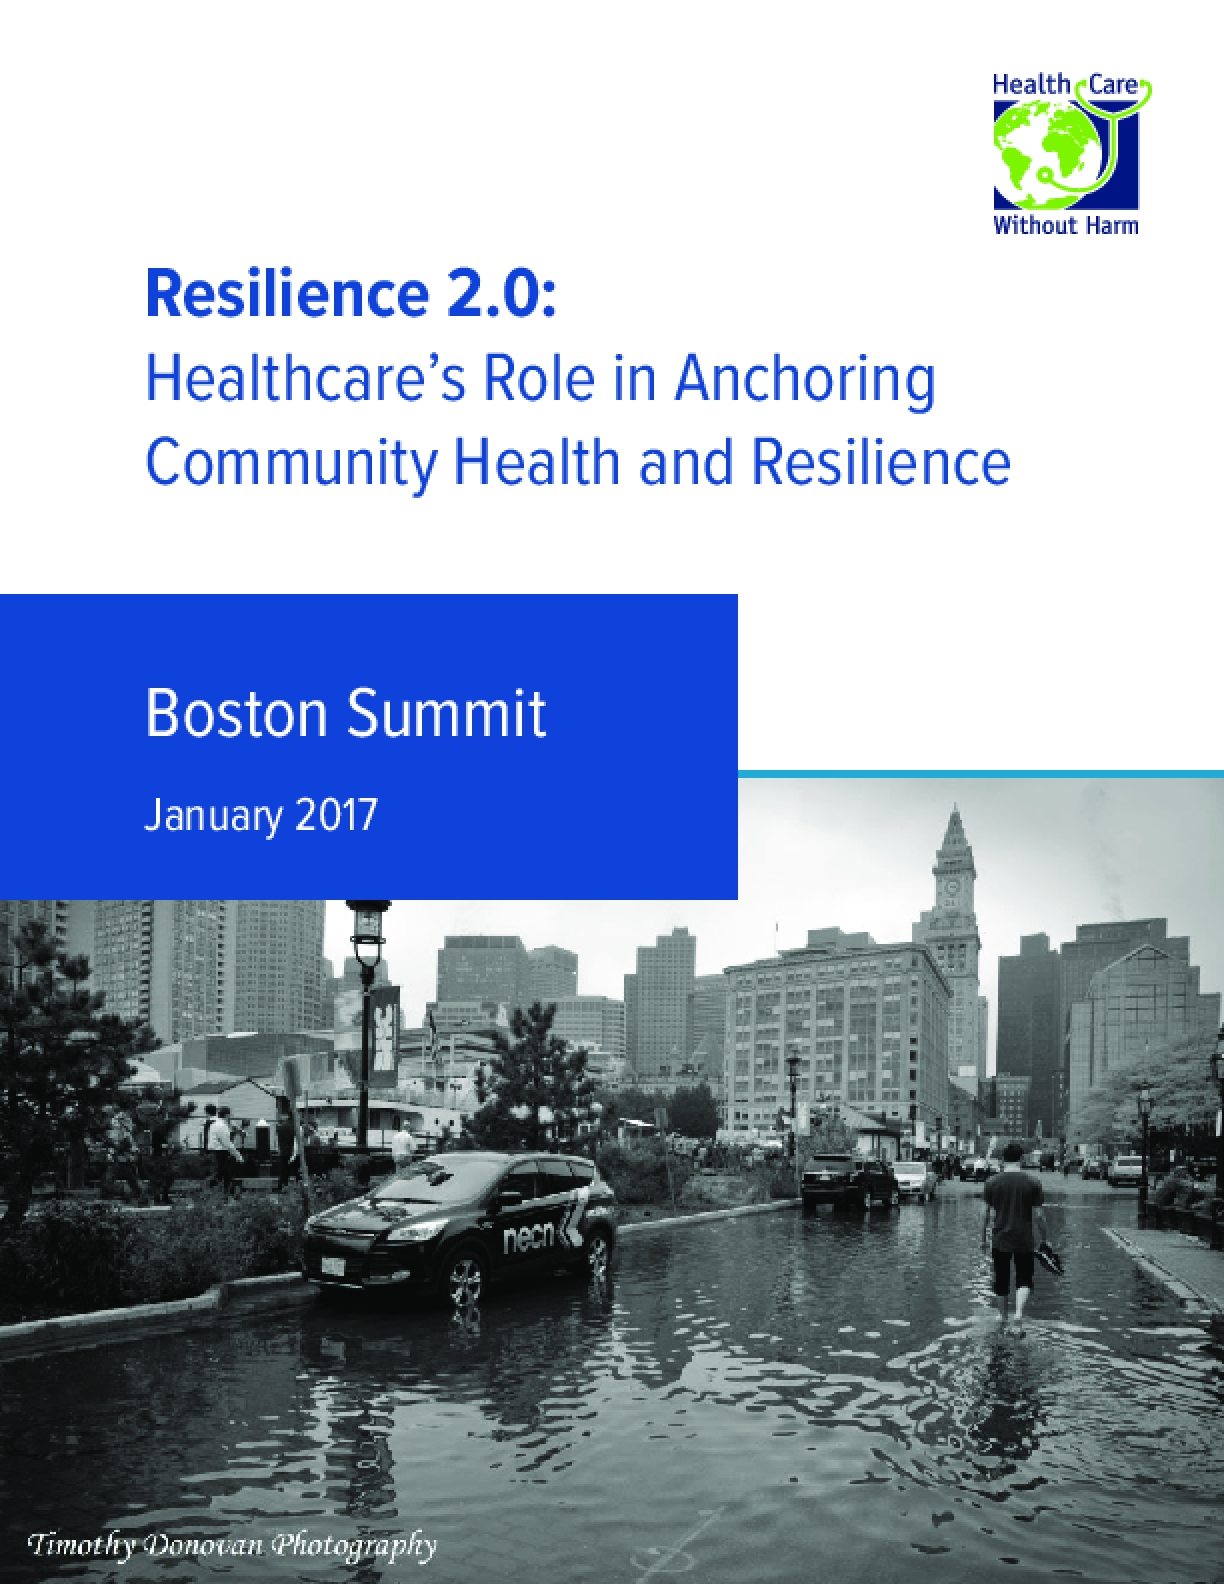 Resilience 2.0: Healthcare's Role in Anchoring Community Health and Resilience